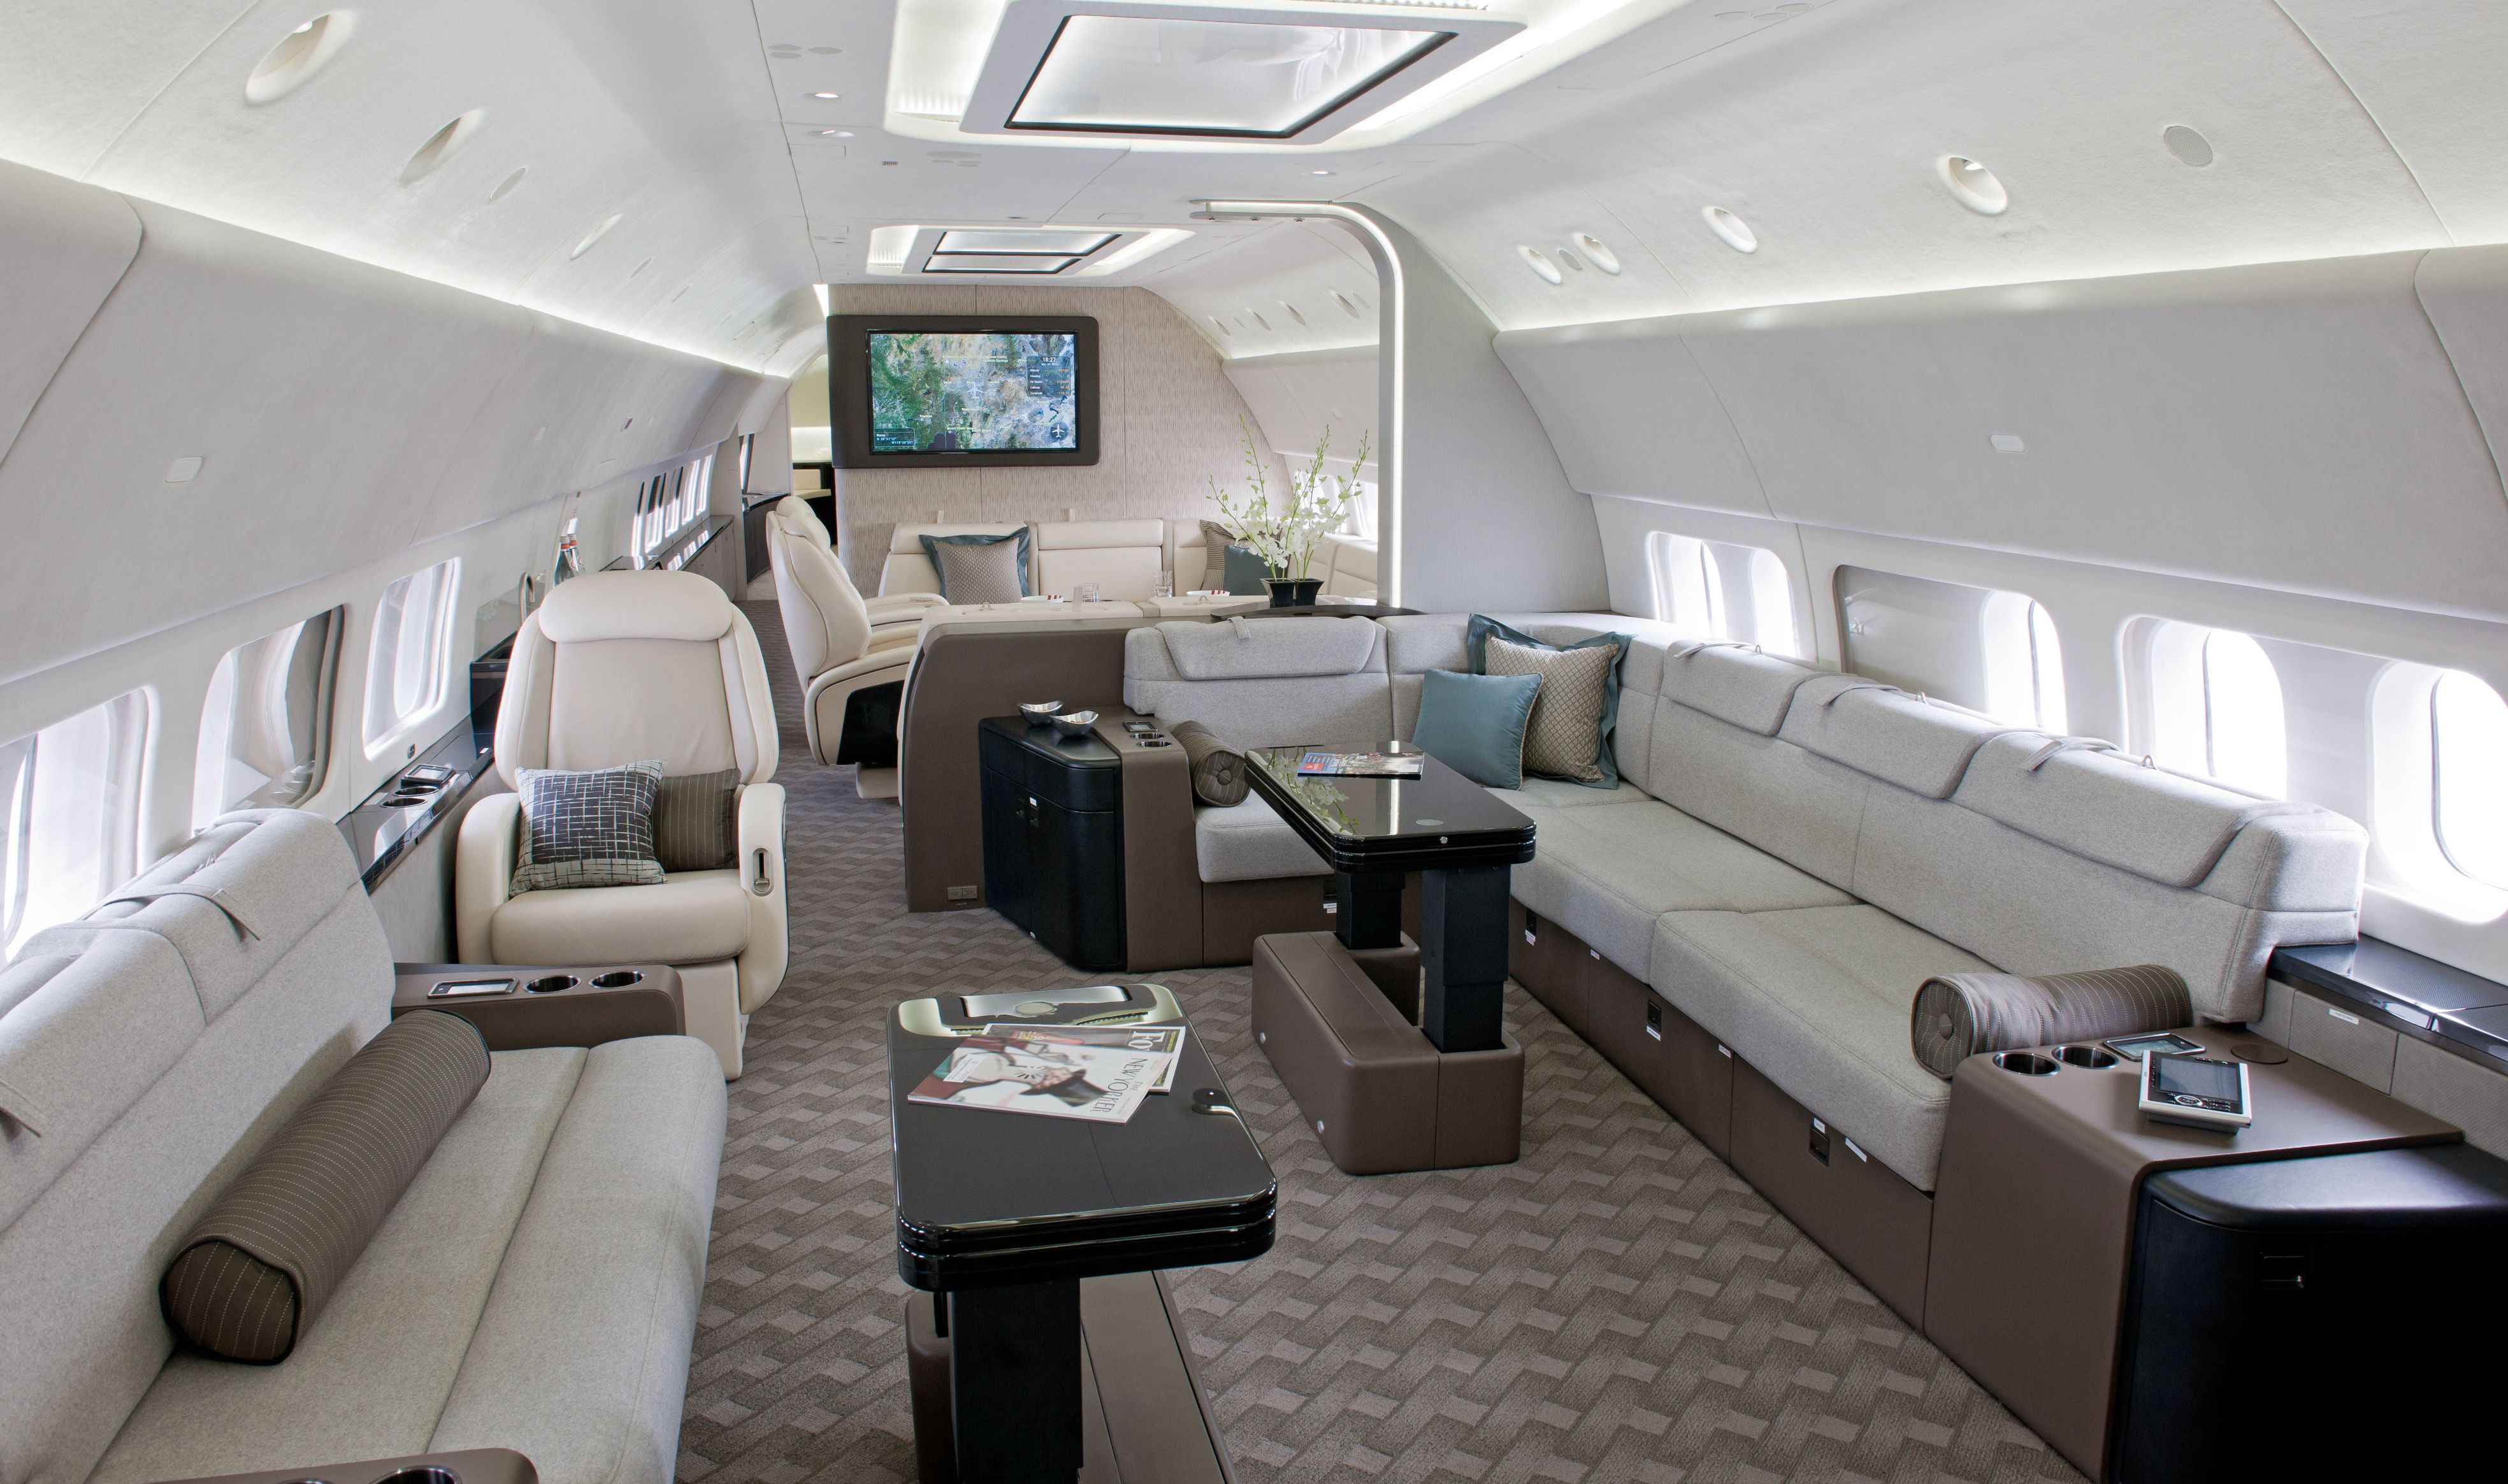 Private jet interior furnished like a vintage train aviation - Airplanes